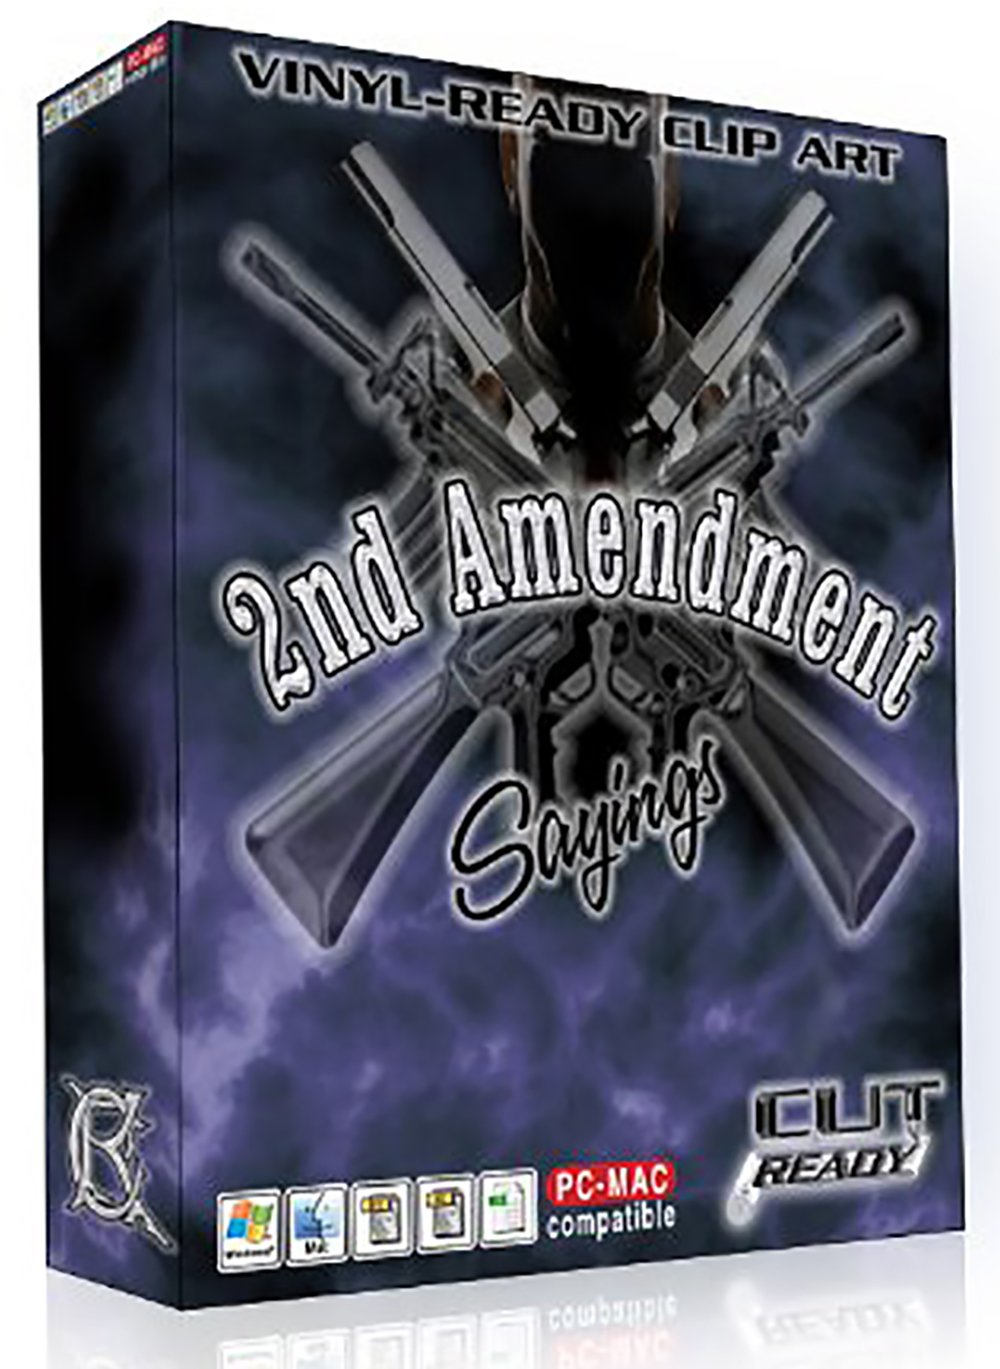 2ND AMENDMENT GUN RIFLE FIREARM SAYINGS Vector Clip Art Vinyl Cutter & Plotters - Great for Silk Screening - T-Shirts - Making Decals & Stickers - Printing - Awesome for License Plates by Cut Ready Clipart